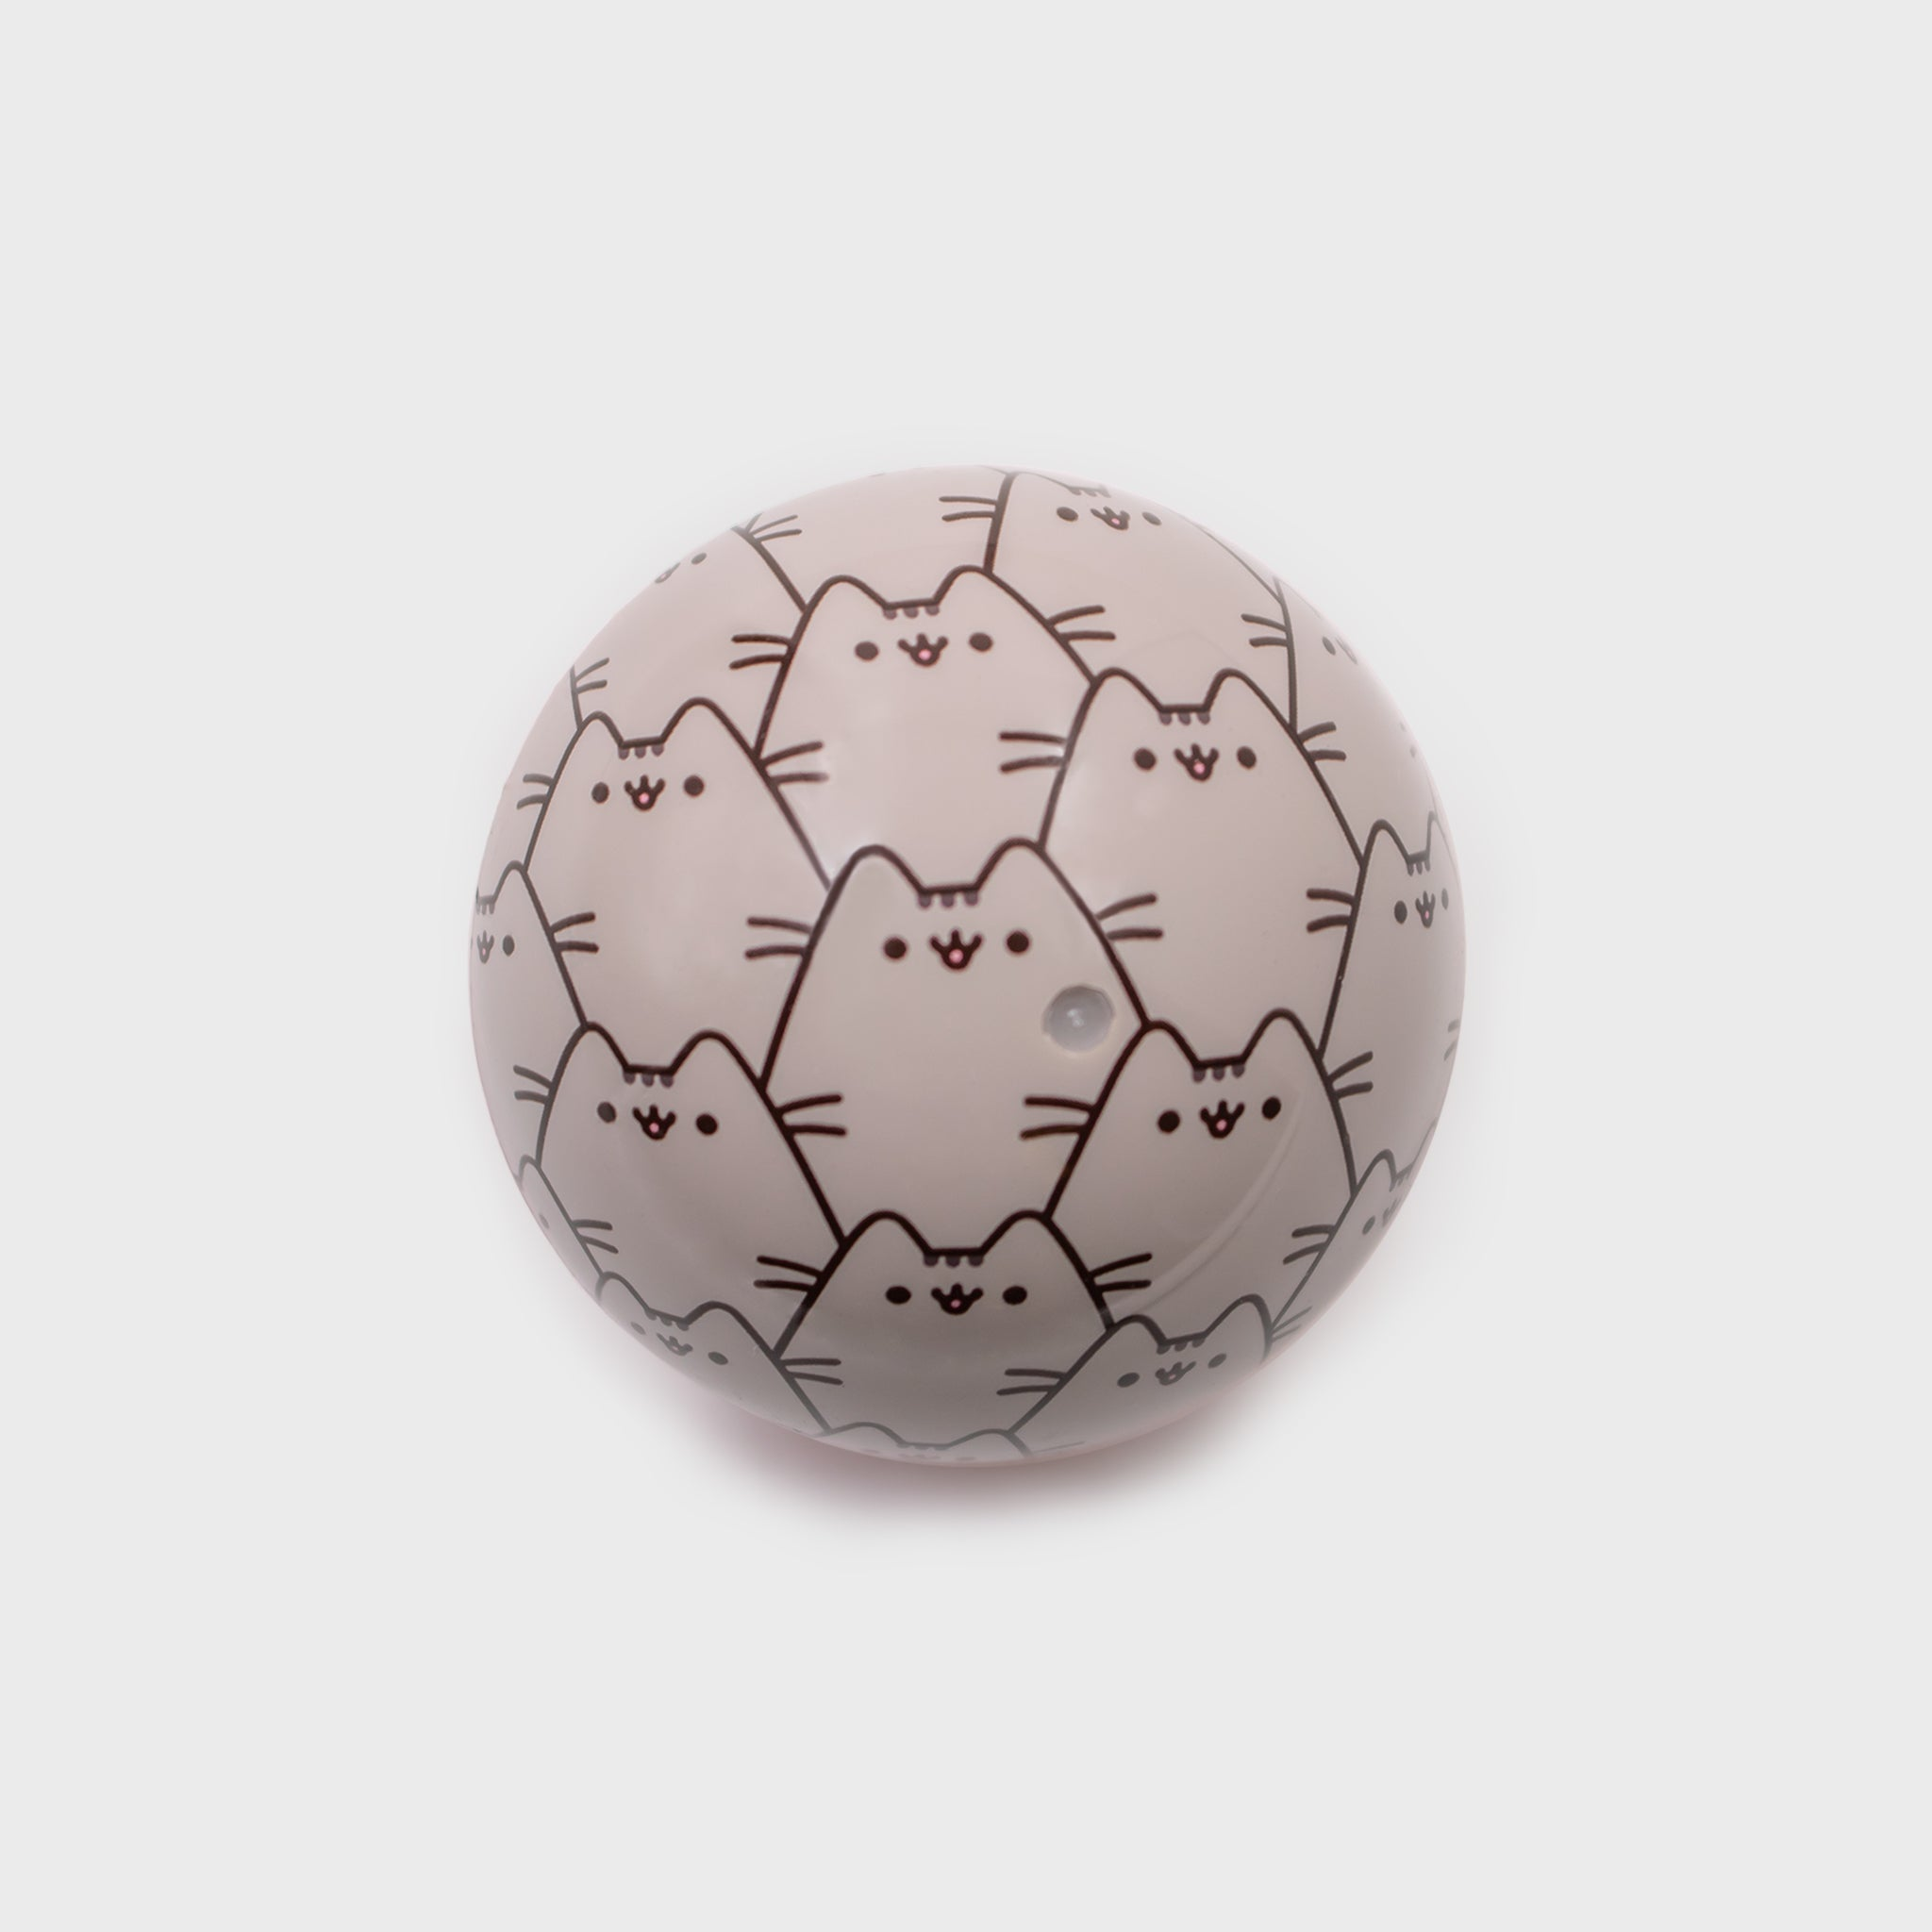 pusheen pet toy balls set cute cat culturefly